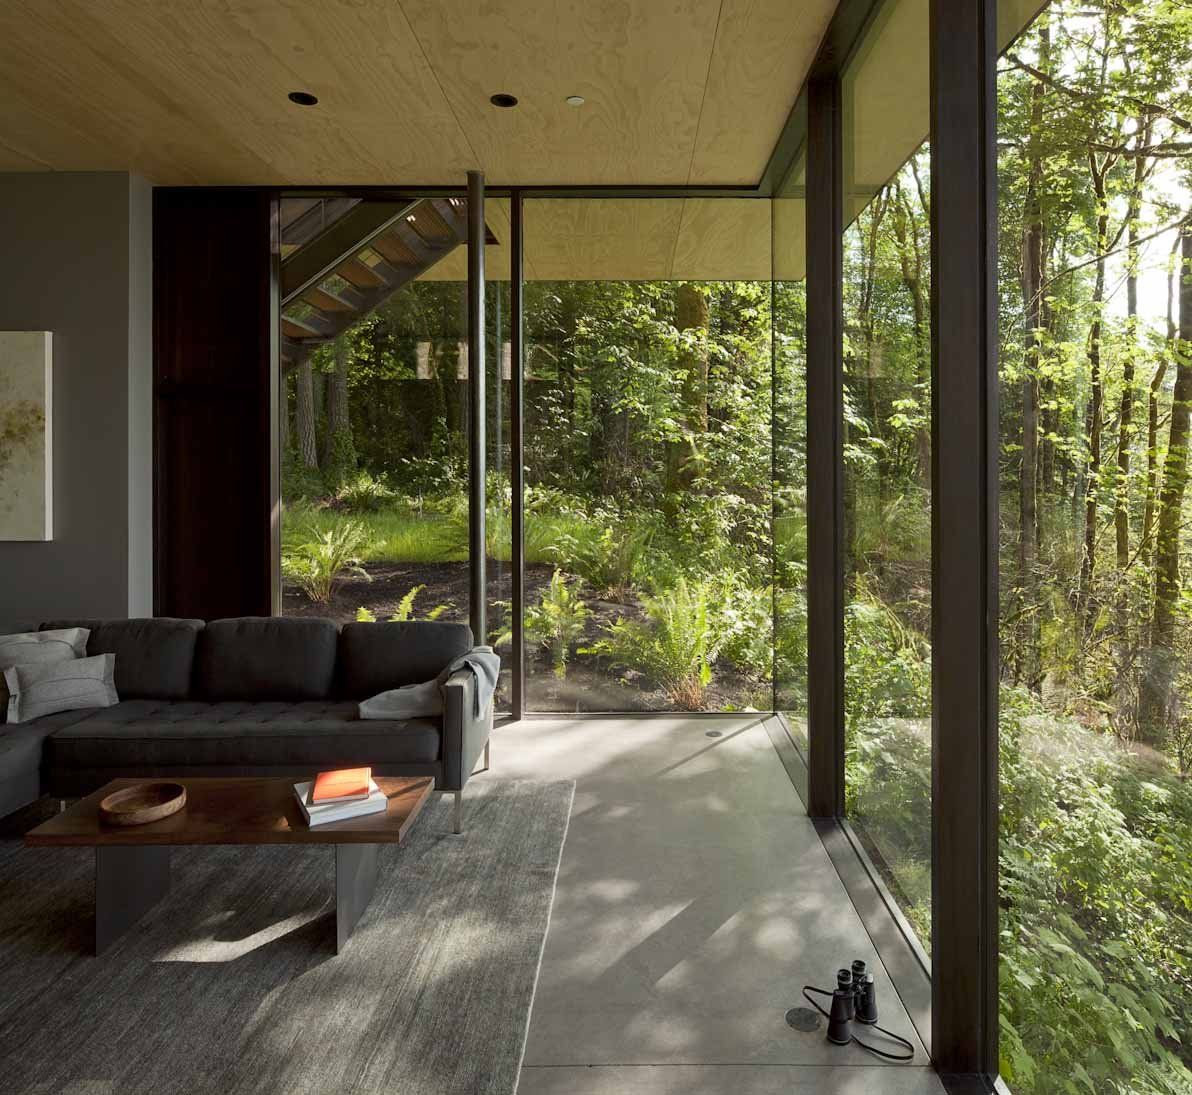 Mw works architecture - Case Inlet Retreat By Mw Works Architecture Design